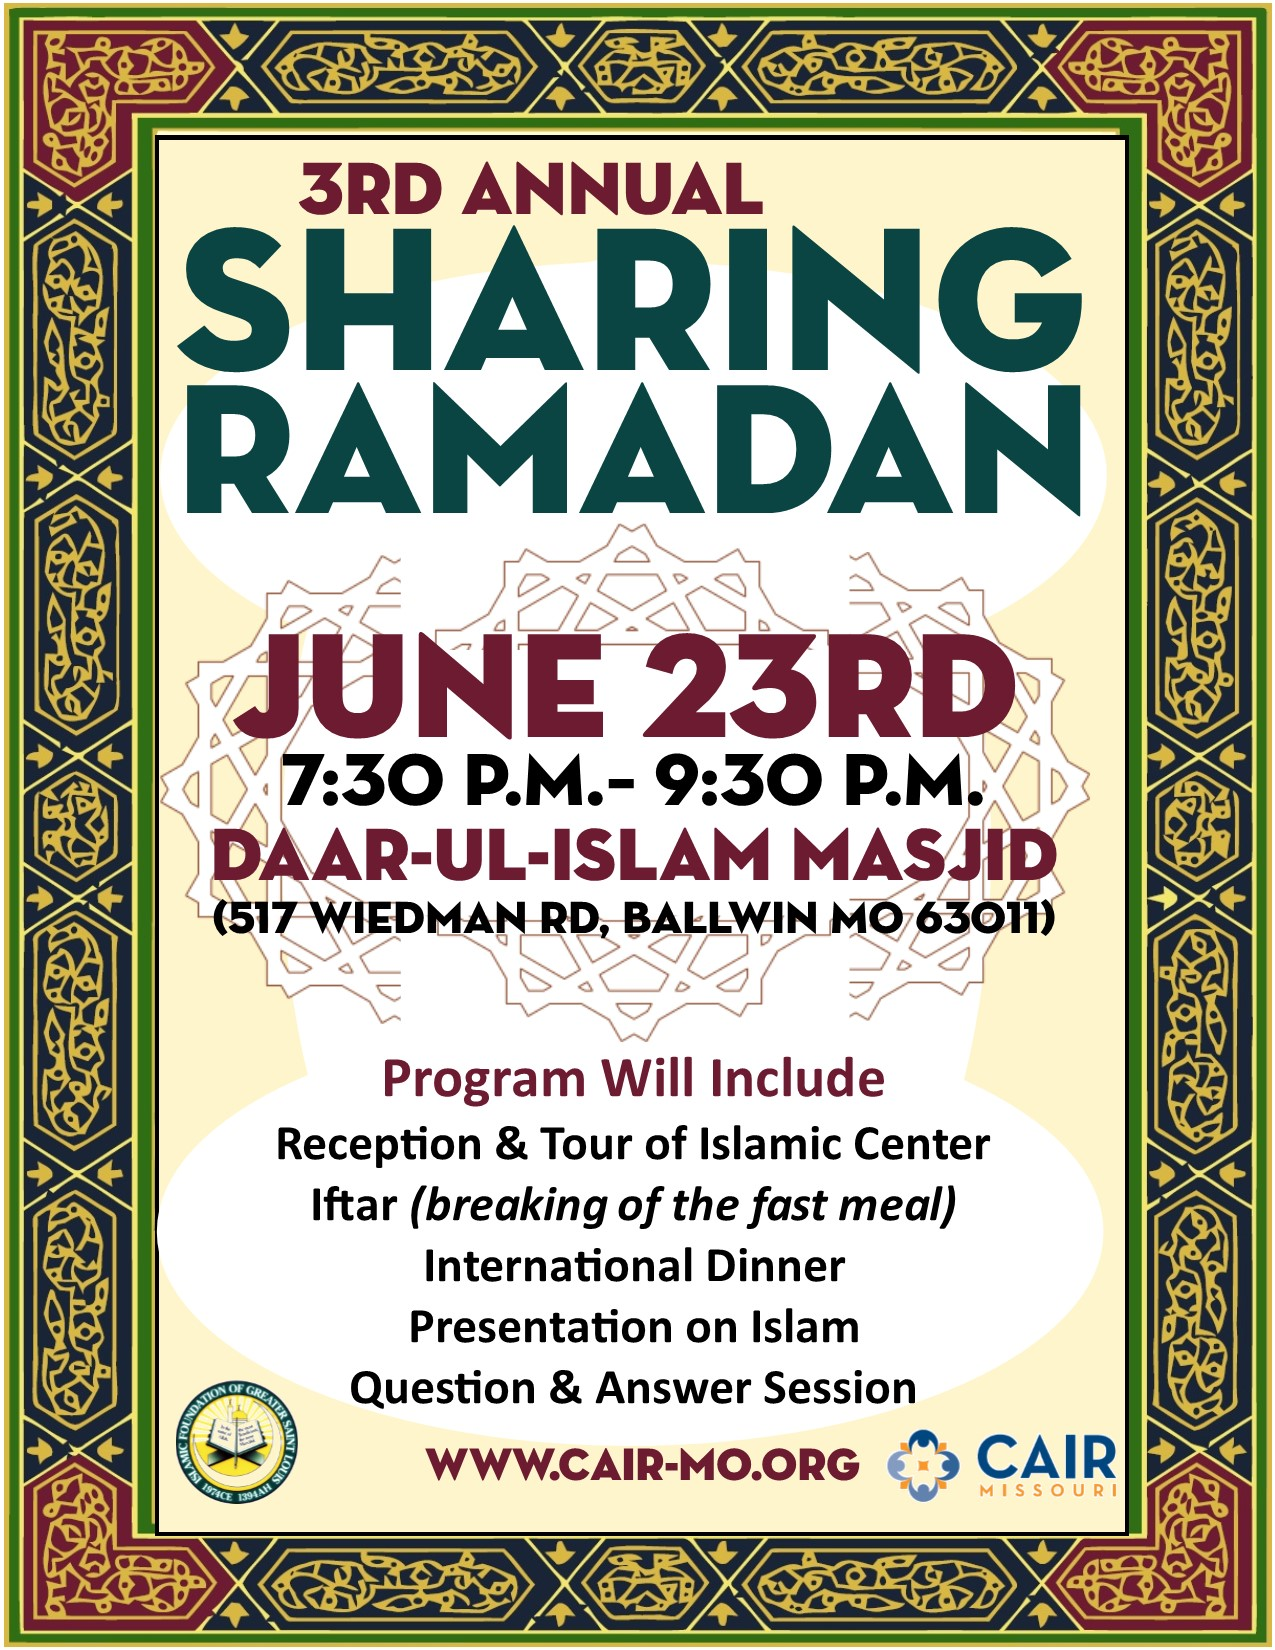 Sharing Ramadan 3rd Annual Flyer